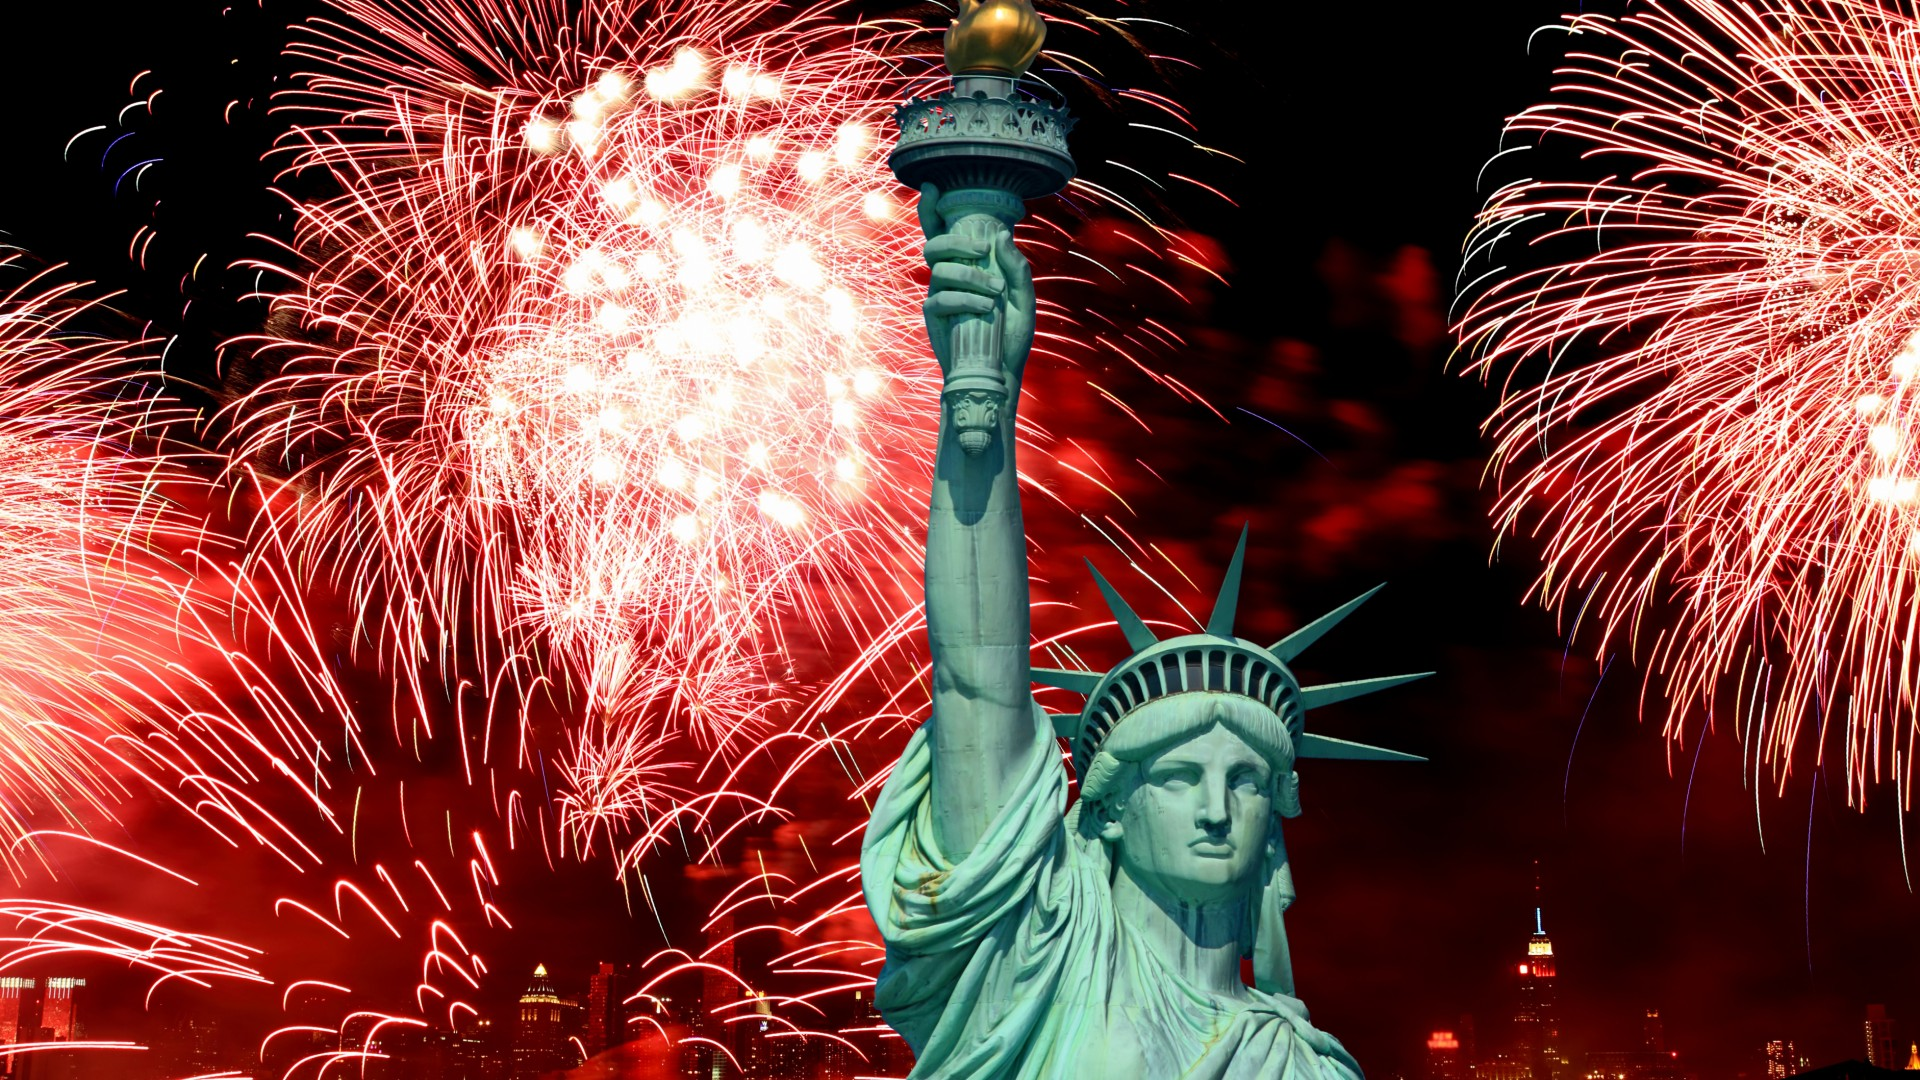 Independence Day, USA, NY, Statue of Liberty, event, fireworks (horizontal)